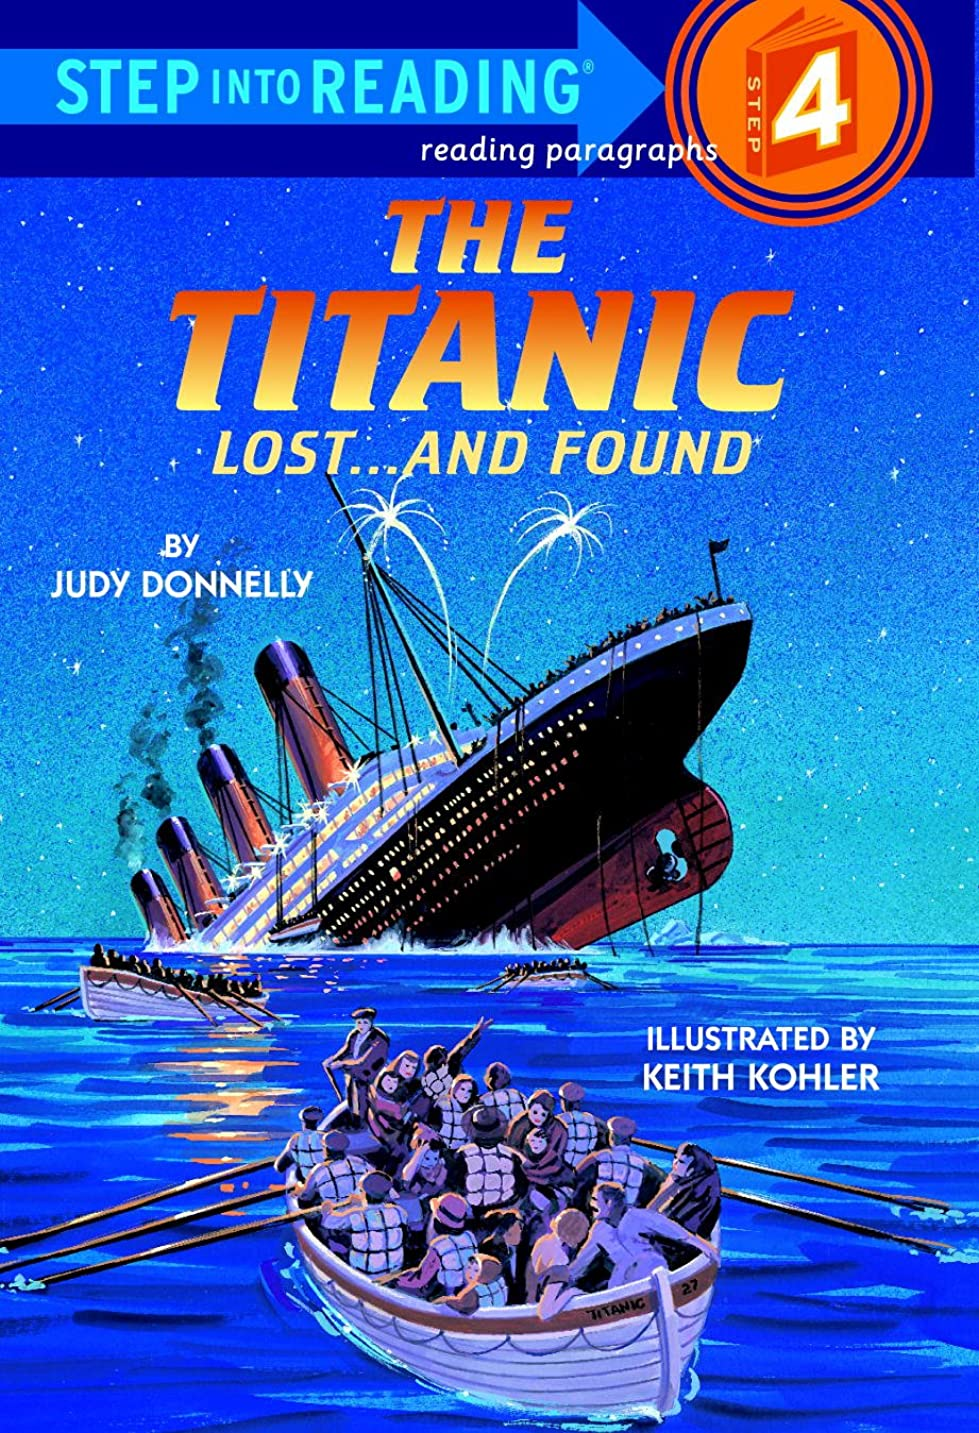 母音めんどり田舎者The Titanic: Lost and Found (Step into Reading) (English Edition)